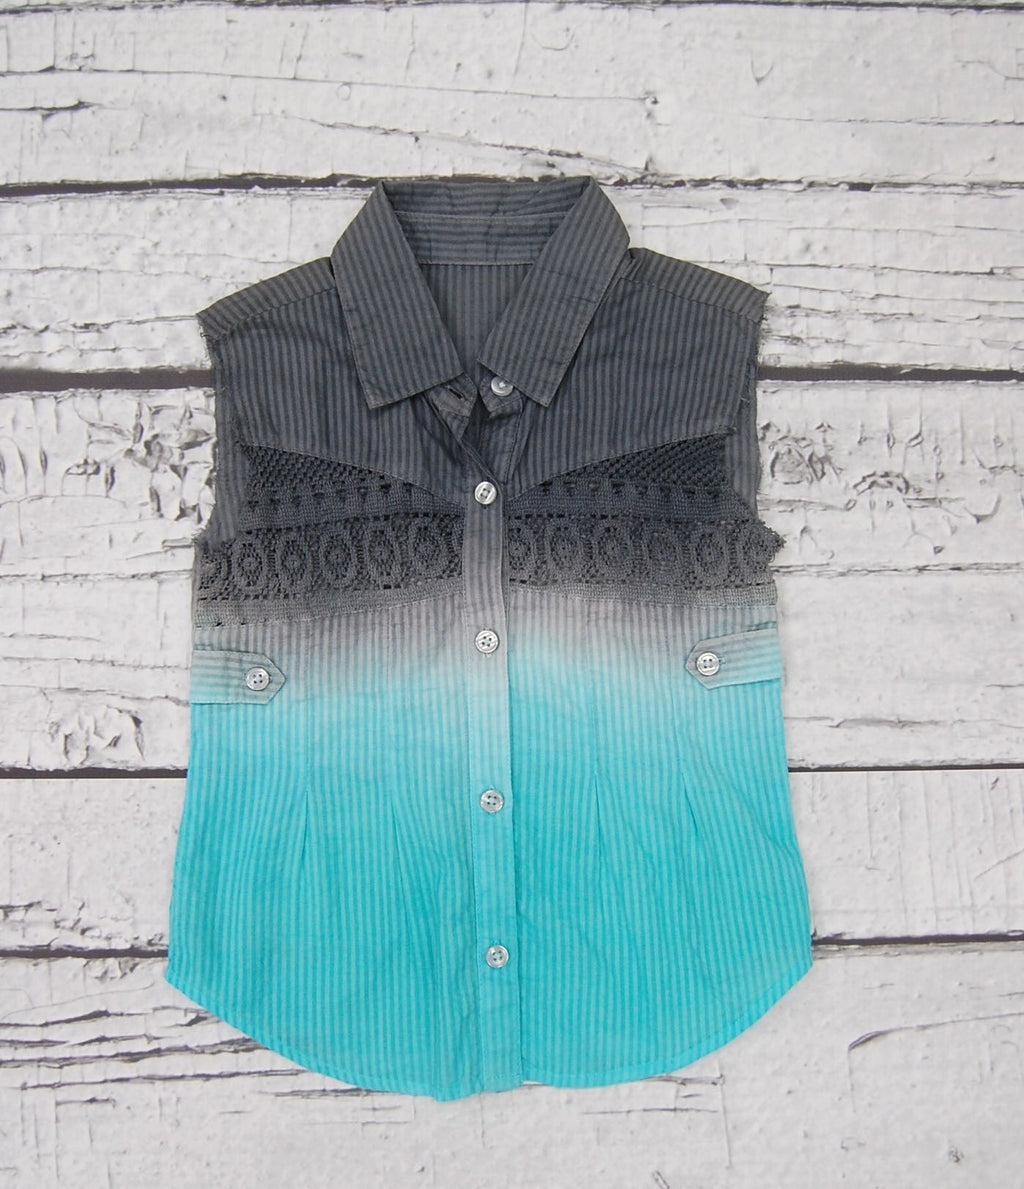 Ombre Jessie Top in Slate Aqua Dazed